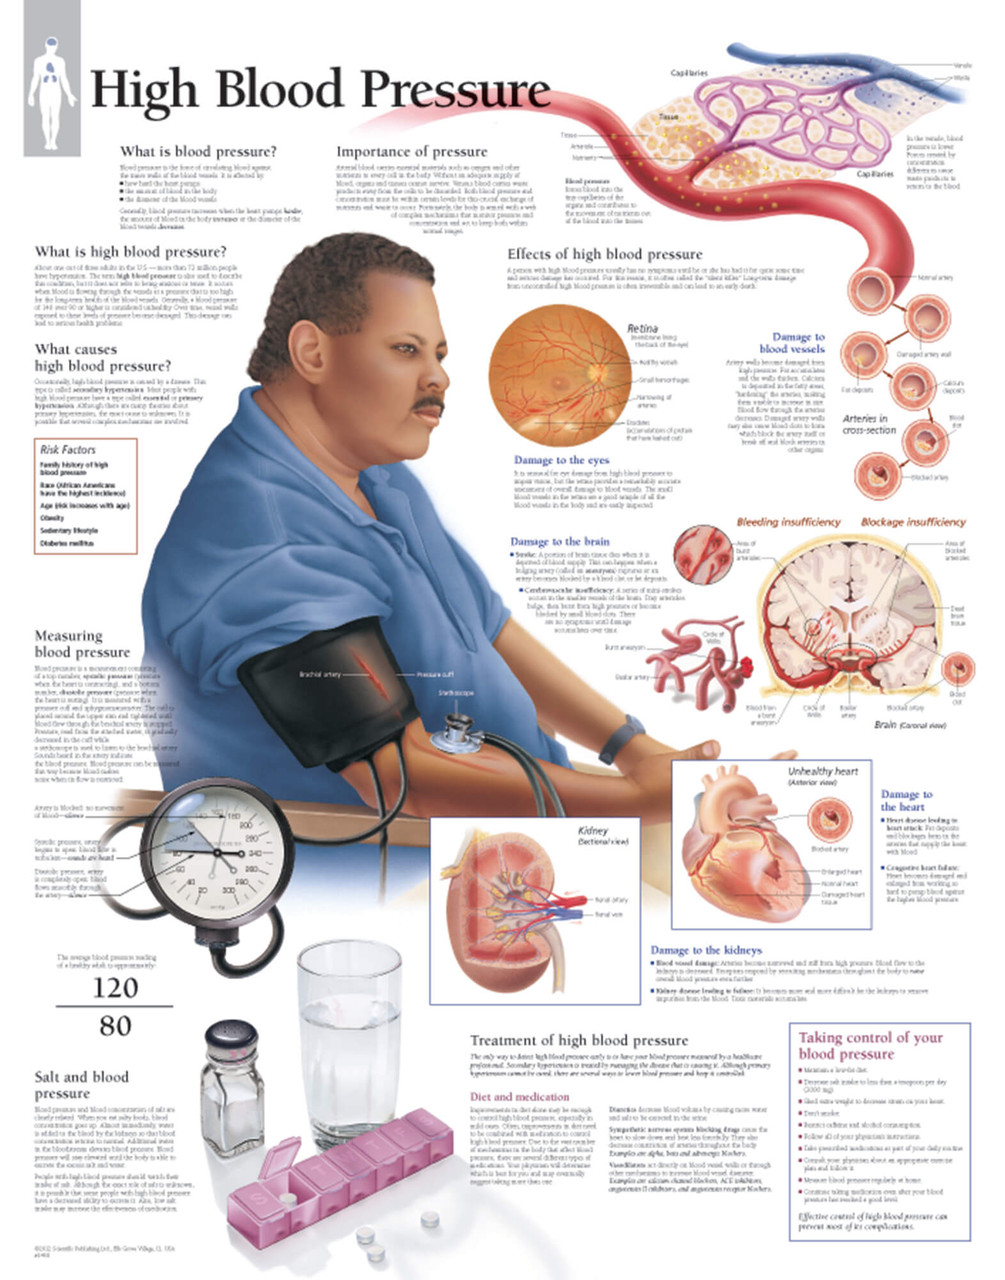 High Blood Pressure Anatomical Poster